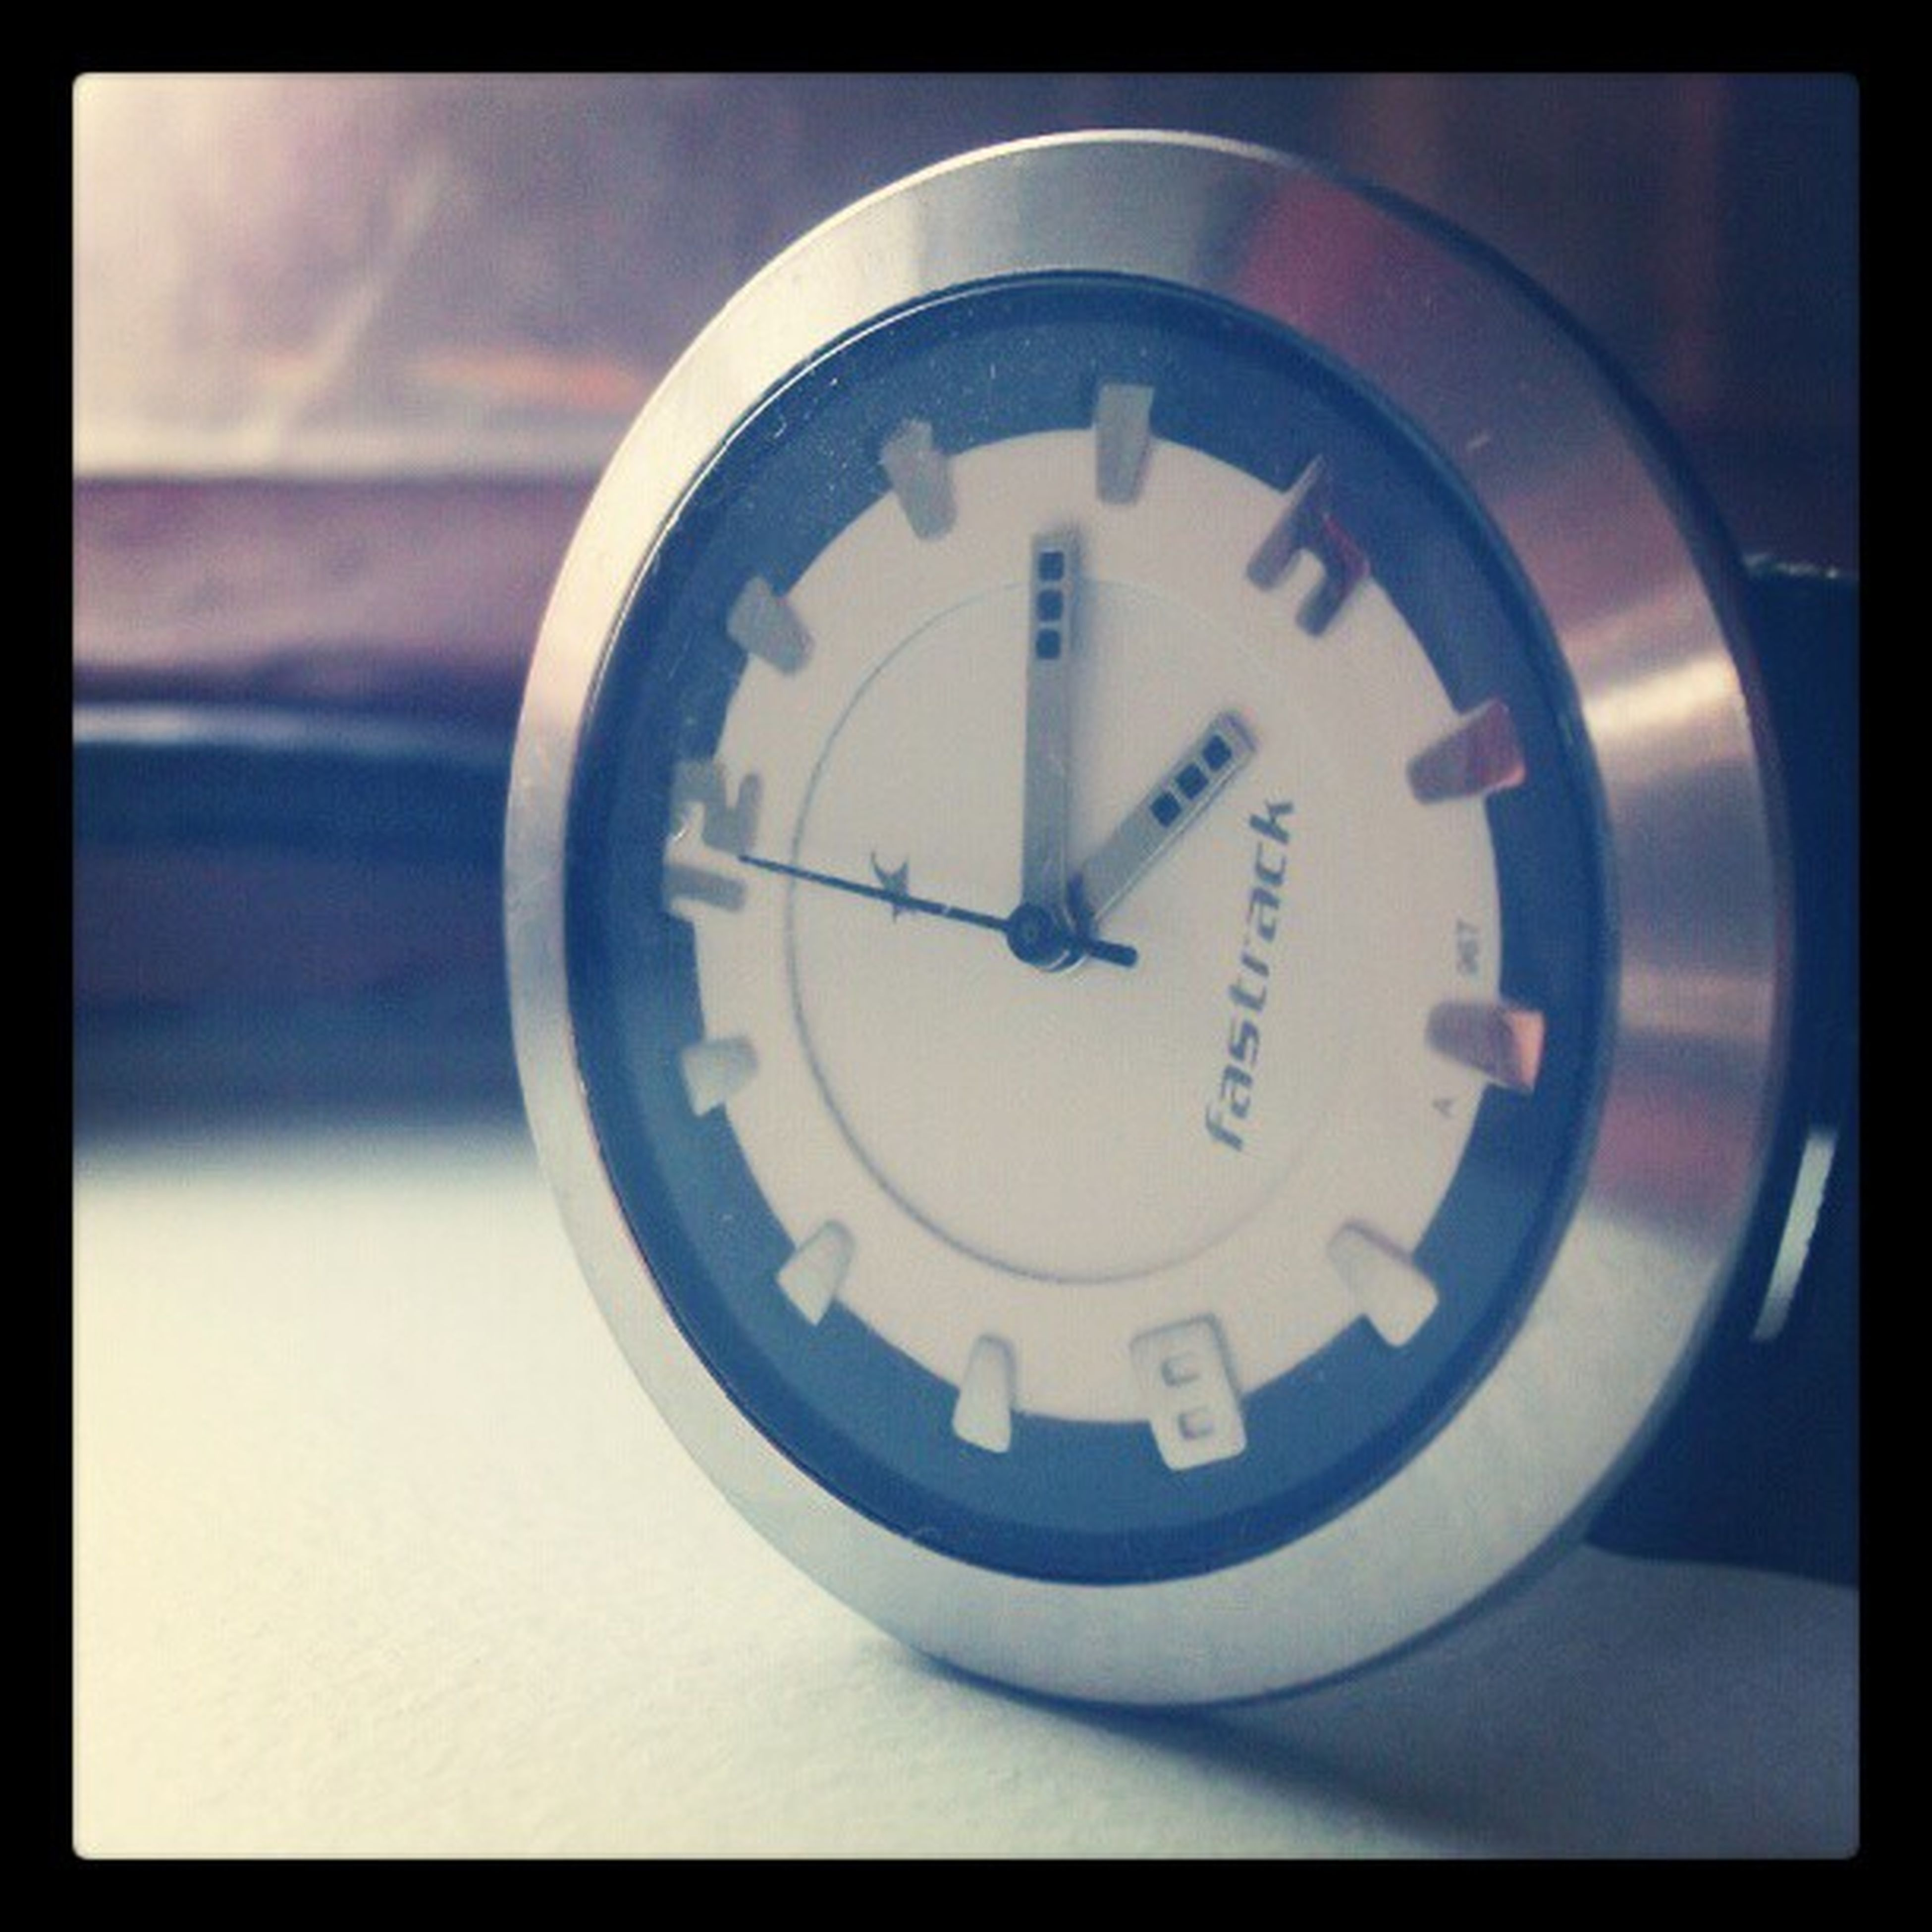 transfer print, auto post production filter, circle, indoors, clock, time, close-up, communication, number, geometric shape, text, no people, accuracy, clock face, single object, shape, day, technology, guidance, round